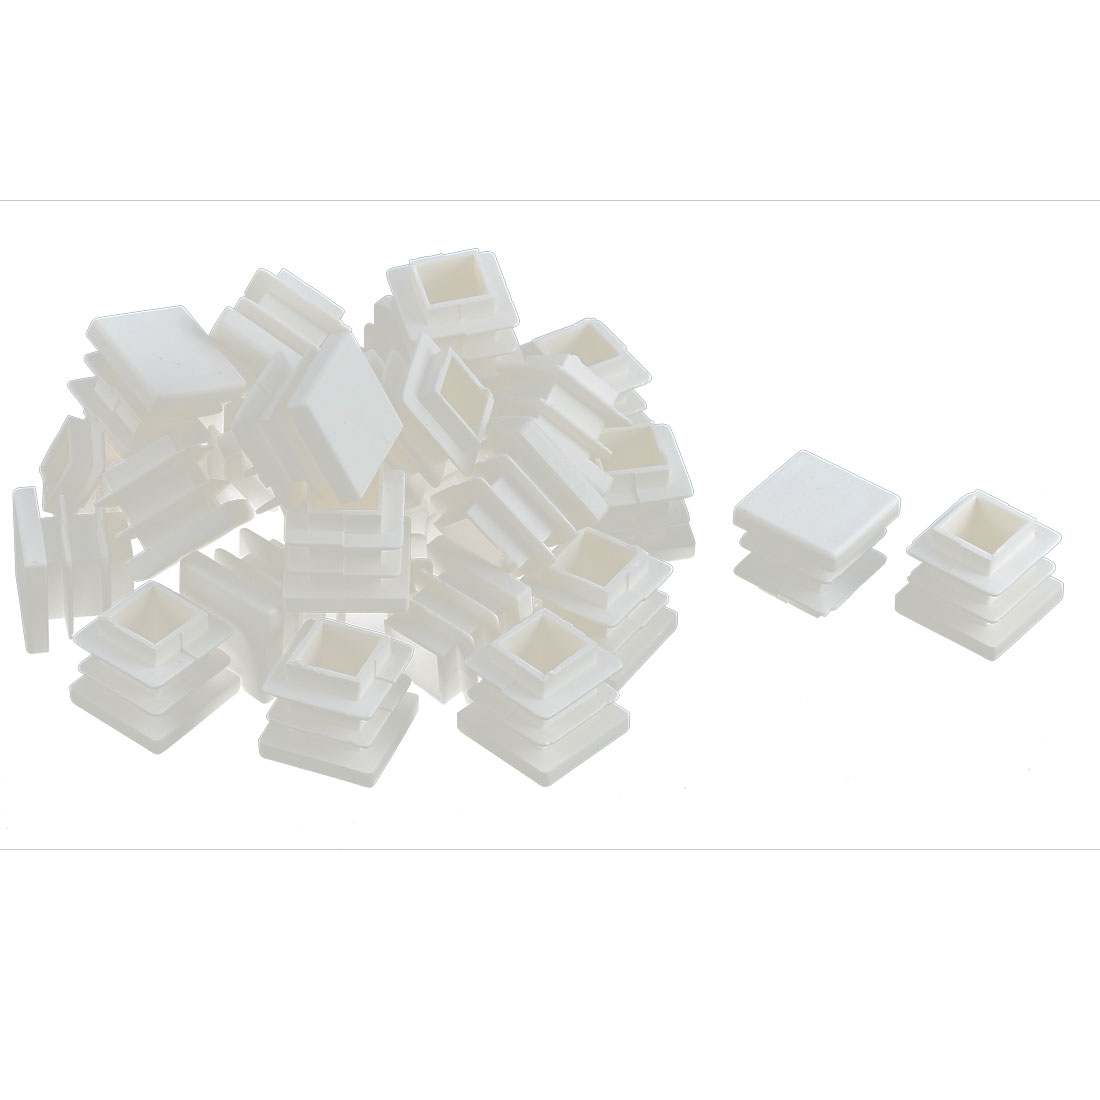 Furniture Desk Chair Legs Plastic Square Tube Pipe Insert Cover End Caps White 16 x 16mm 30pcs